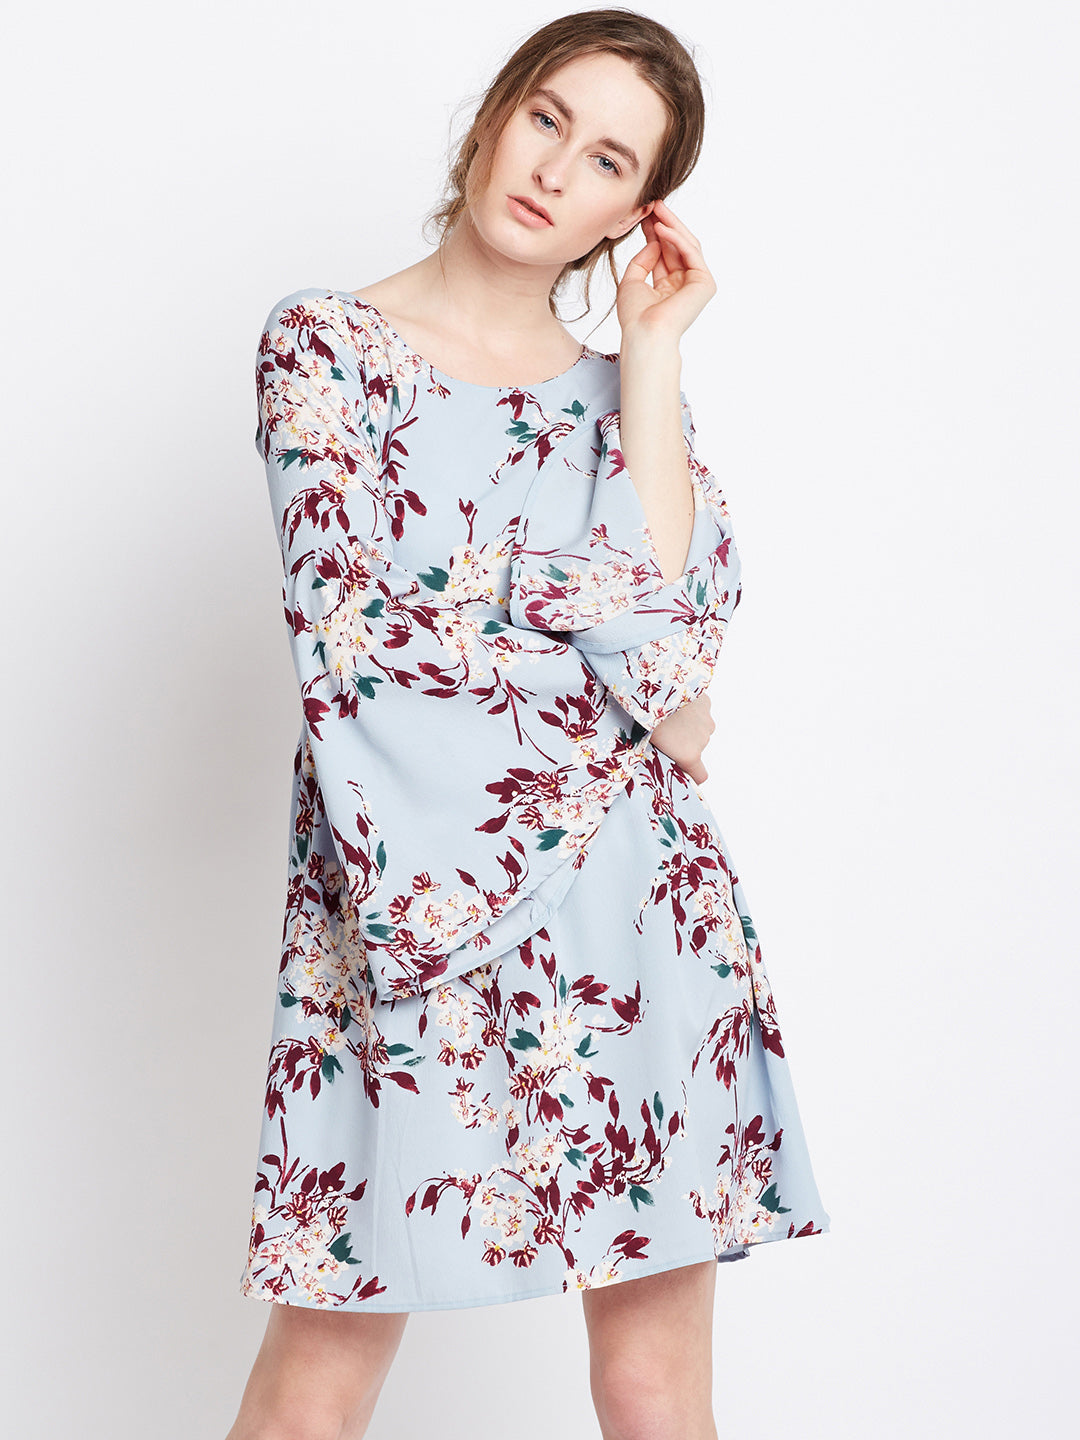 Blue Flared Sleeves A-Line Dress - Berrylush